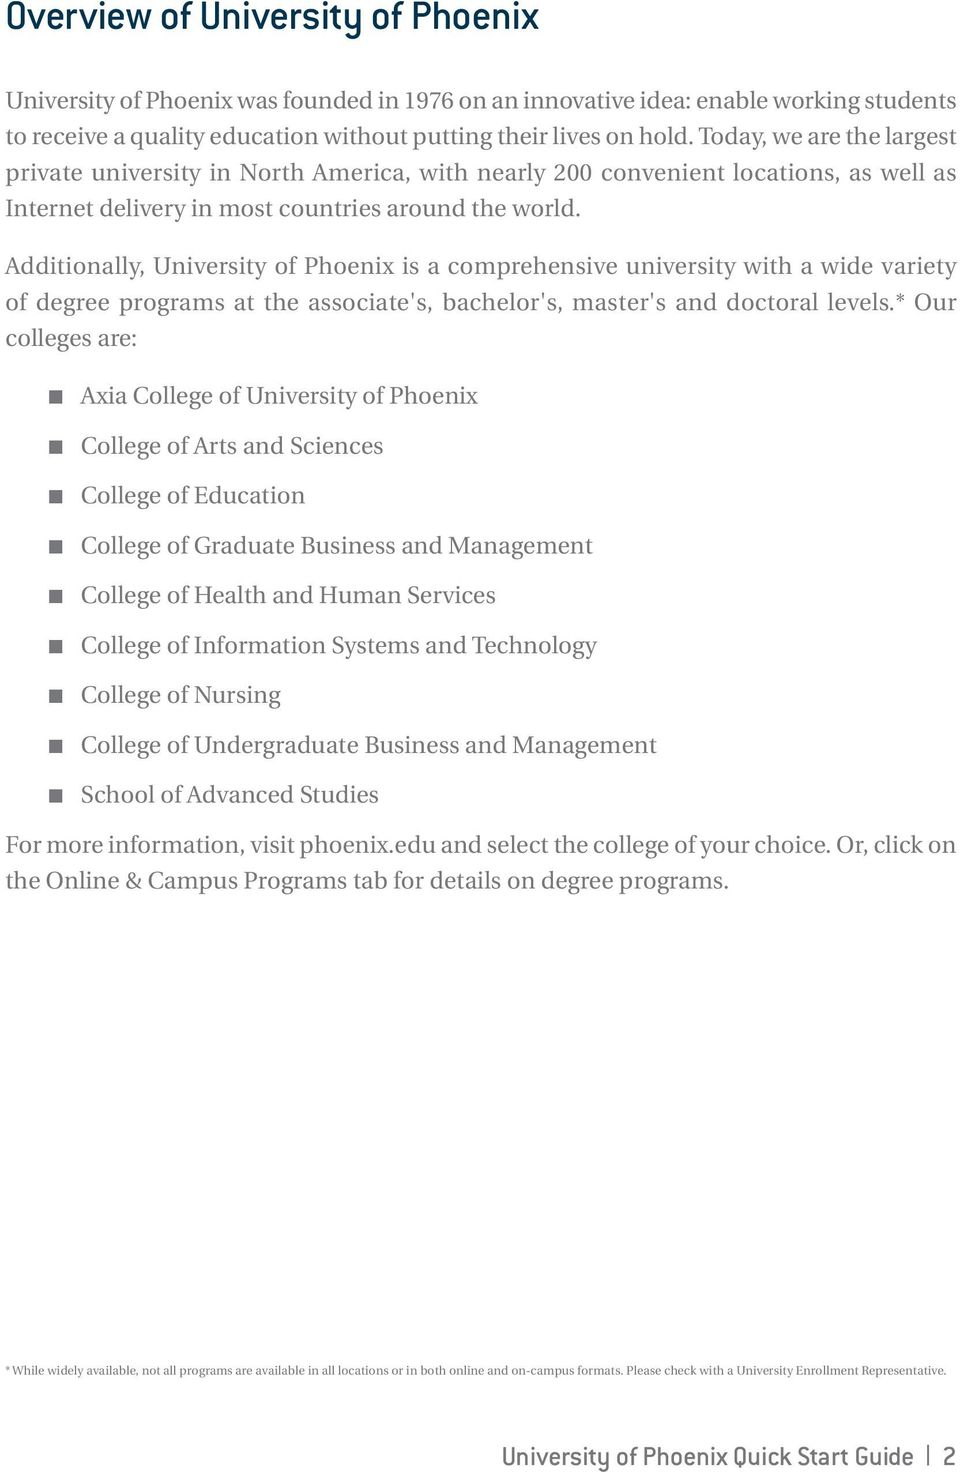 Additionally, University of Phoenix is a comprehensive university with a wide variety of degree programs at the associate's, bachelor's, master's and doctoral levels.